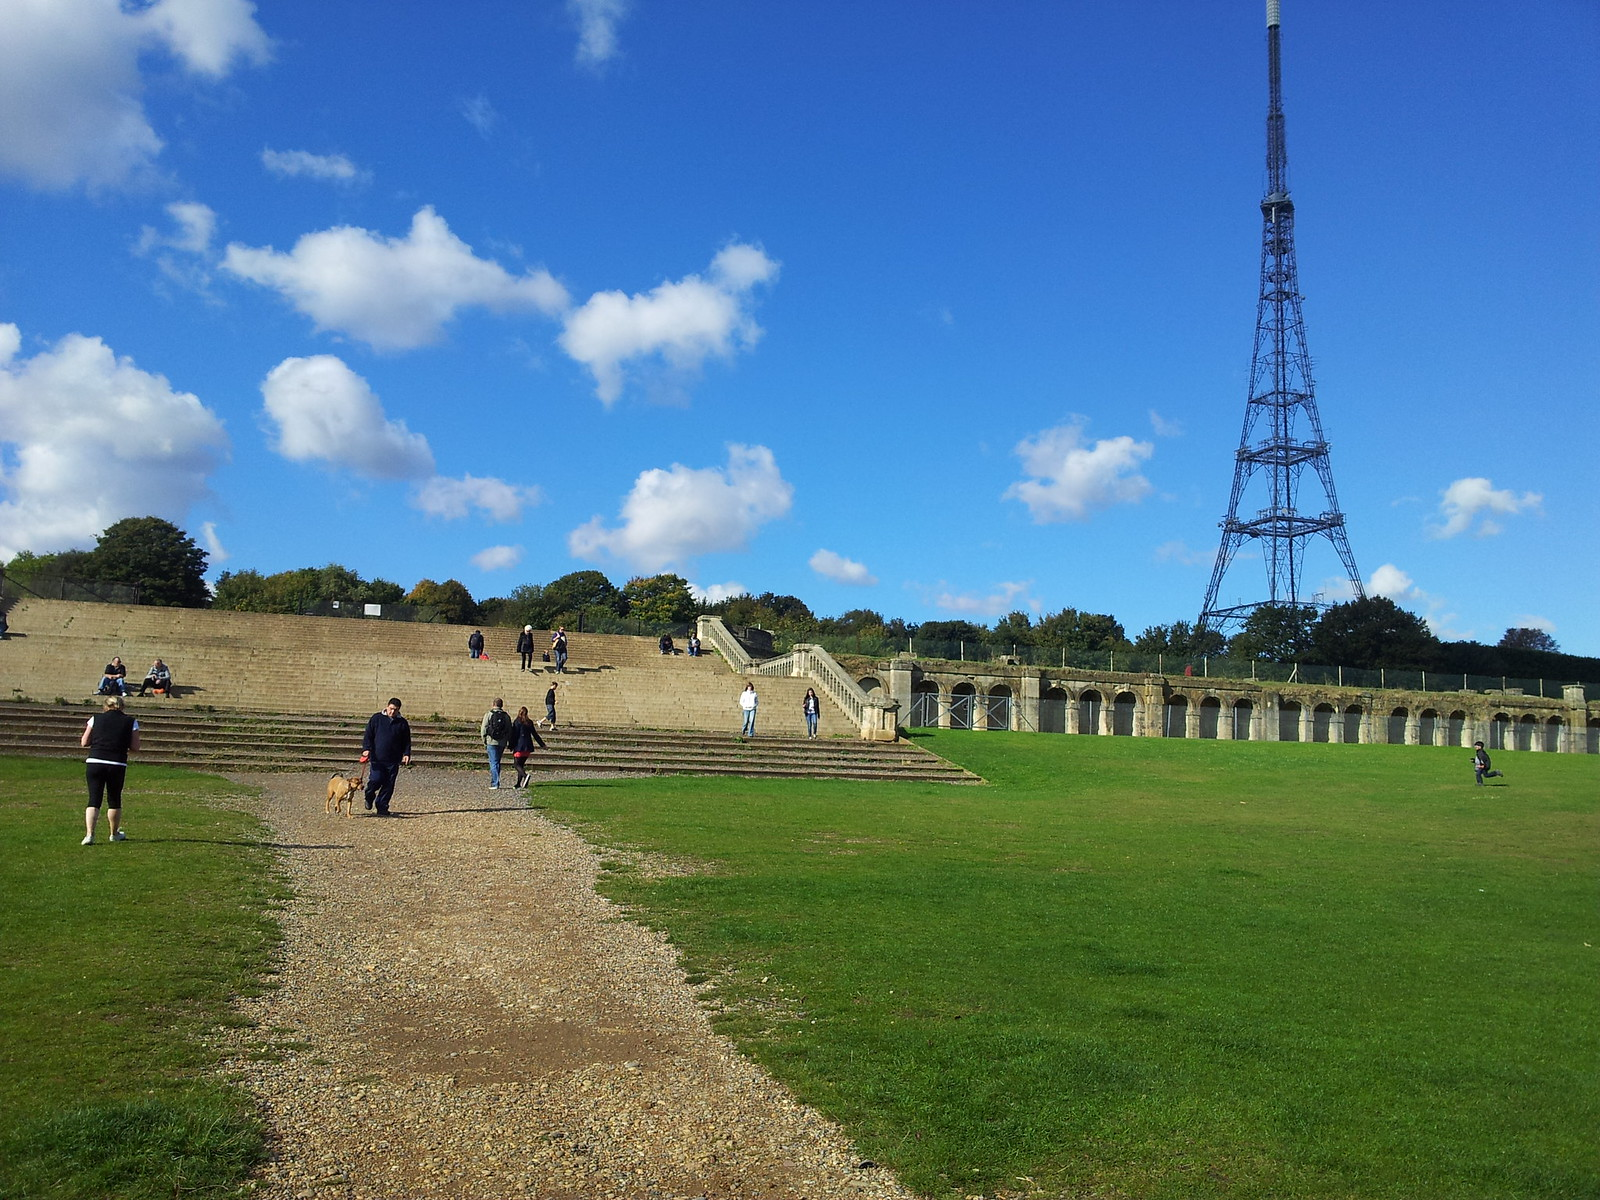 Crystal Palace to Forest Hill